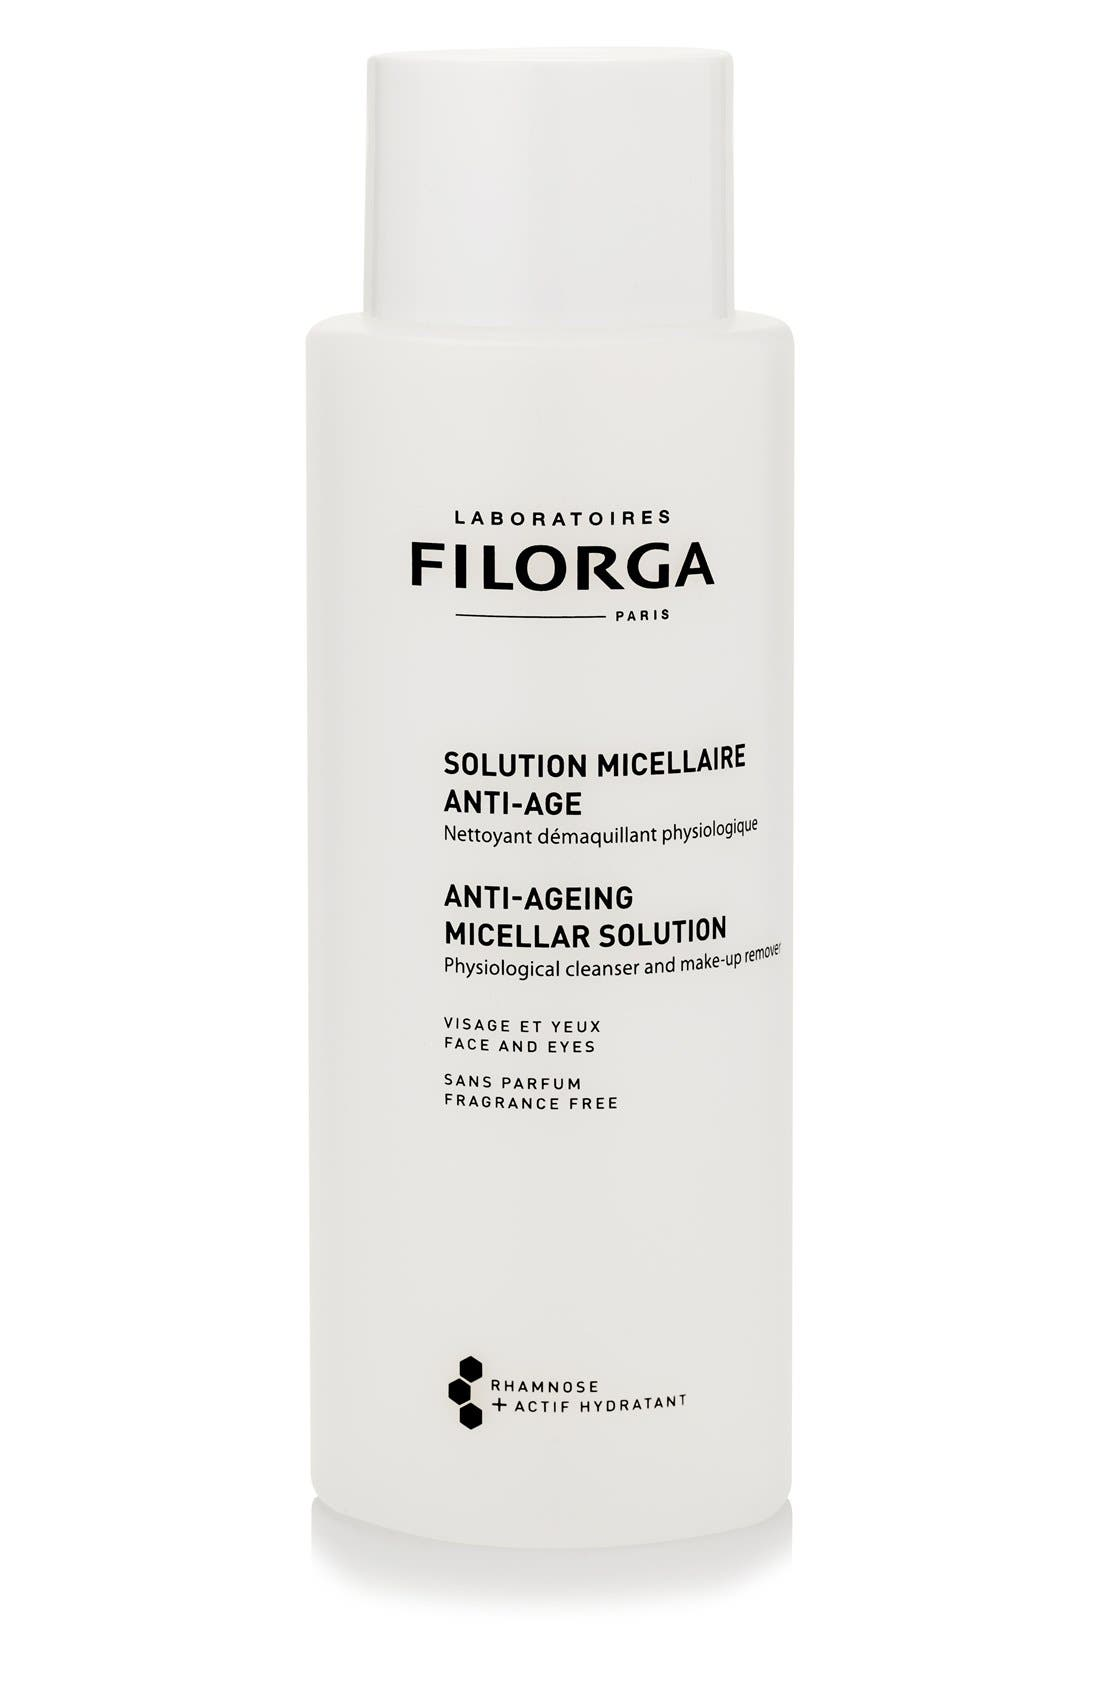 Filorga 'Anti-Aging MicellarSolution' Physiological Cleanser and Makeup Remover